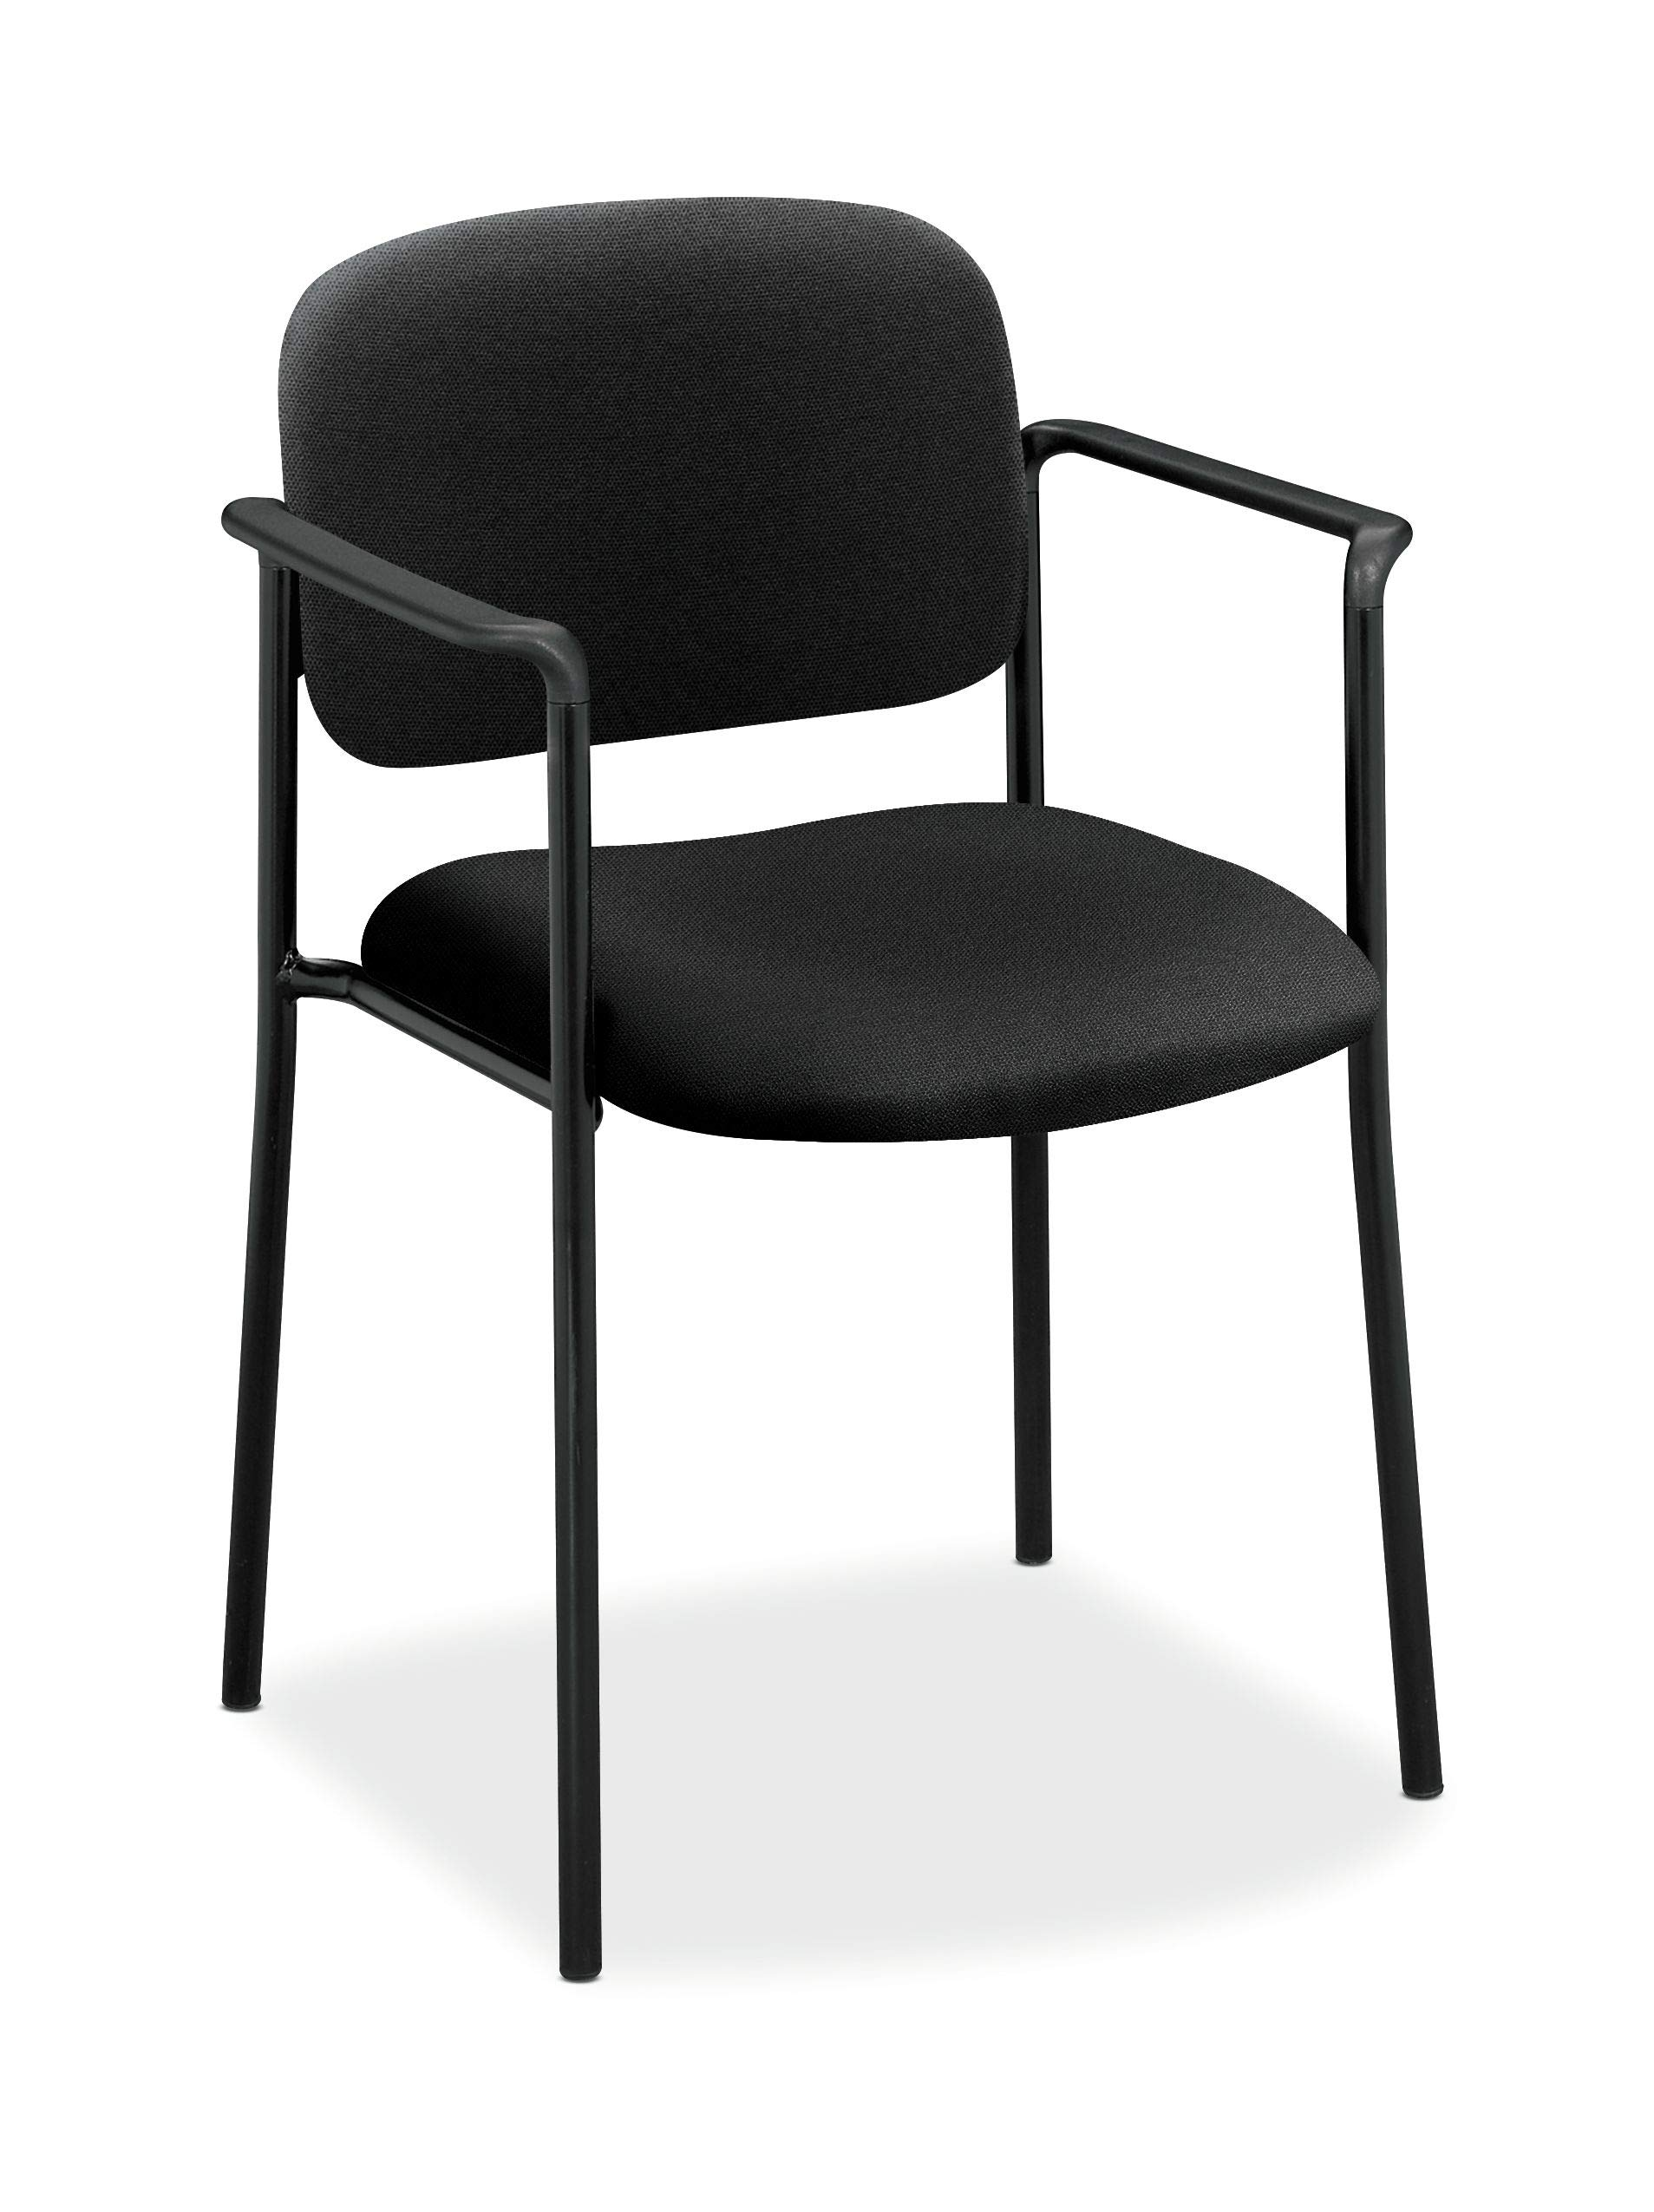 HON Scatter Guest Chair - Upholstered Stacking Chair with Arms, Office Furniture, Black (VL616) by HON